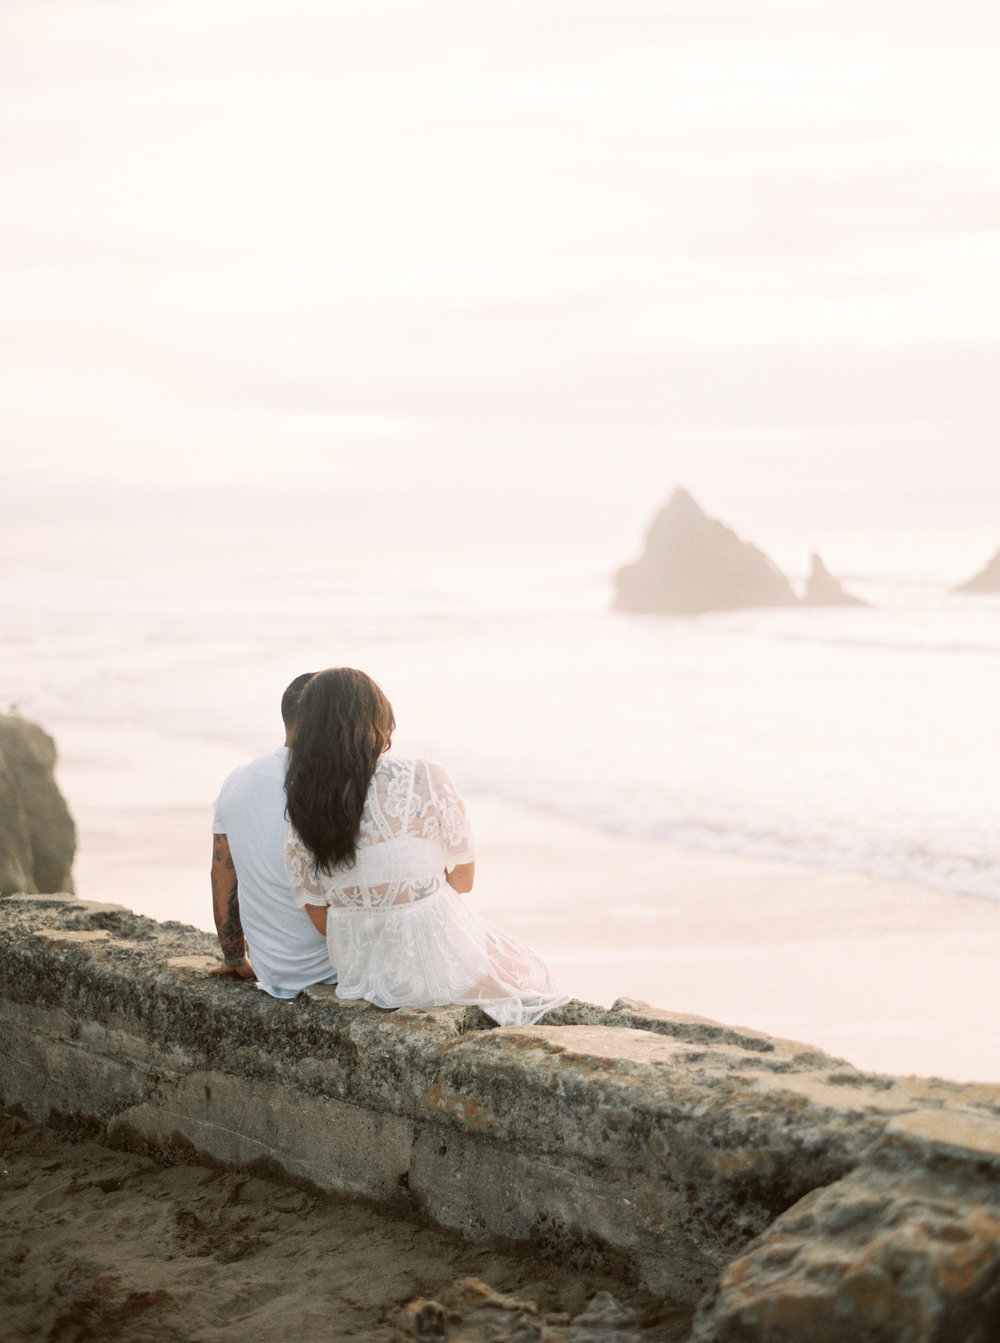 Sutro-baths-san-francisco-engagement-48.jpg